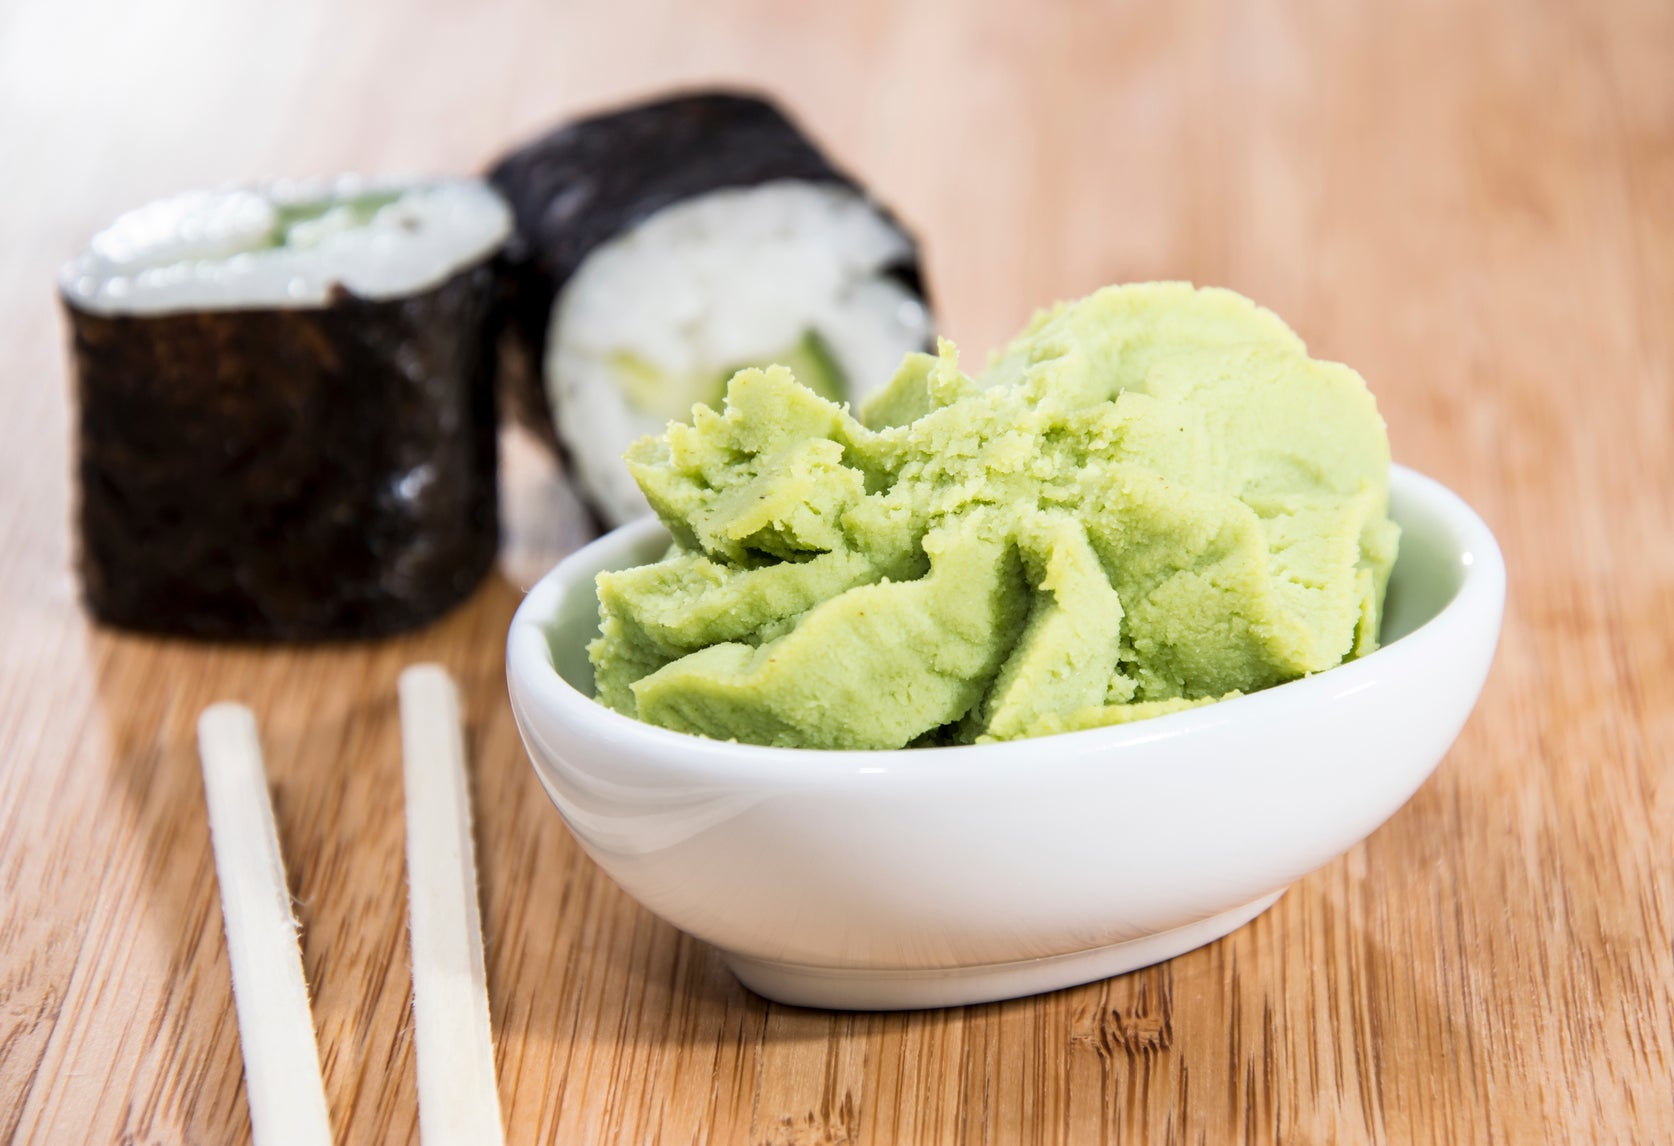 Wasabi paste on your plate is probably mashed-up horseradish with food colouring